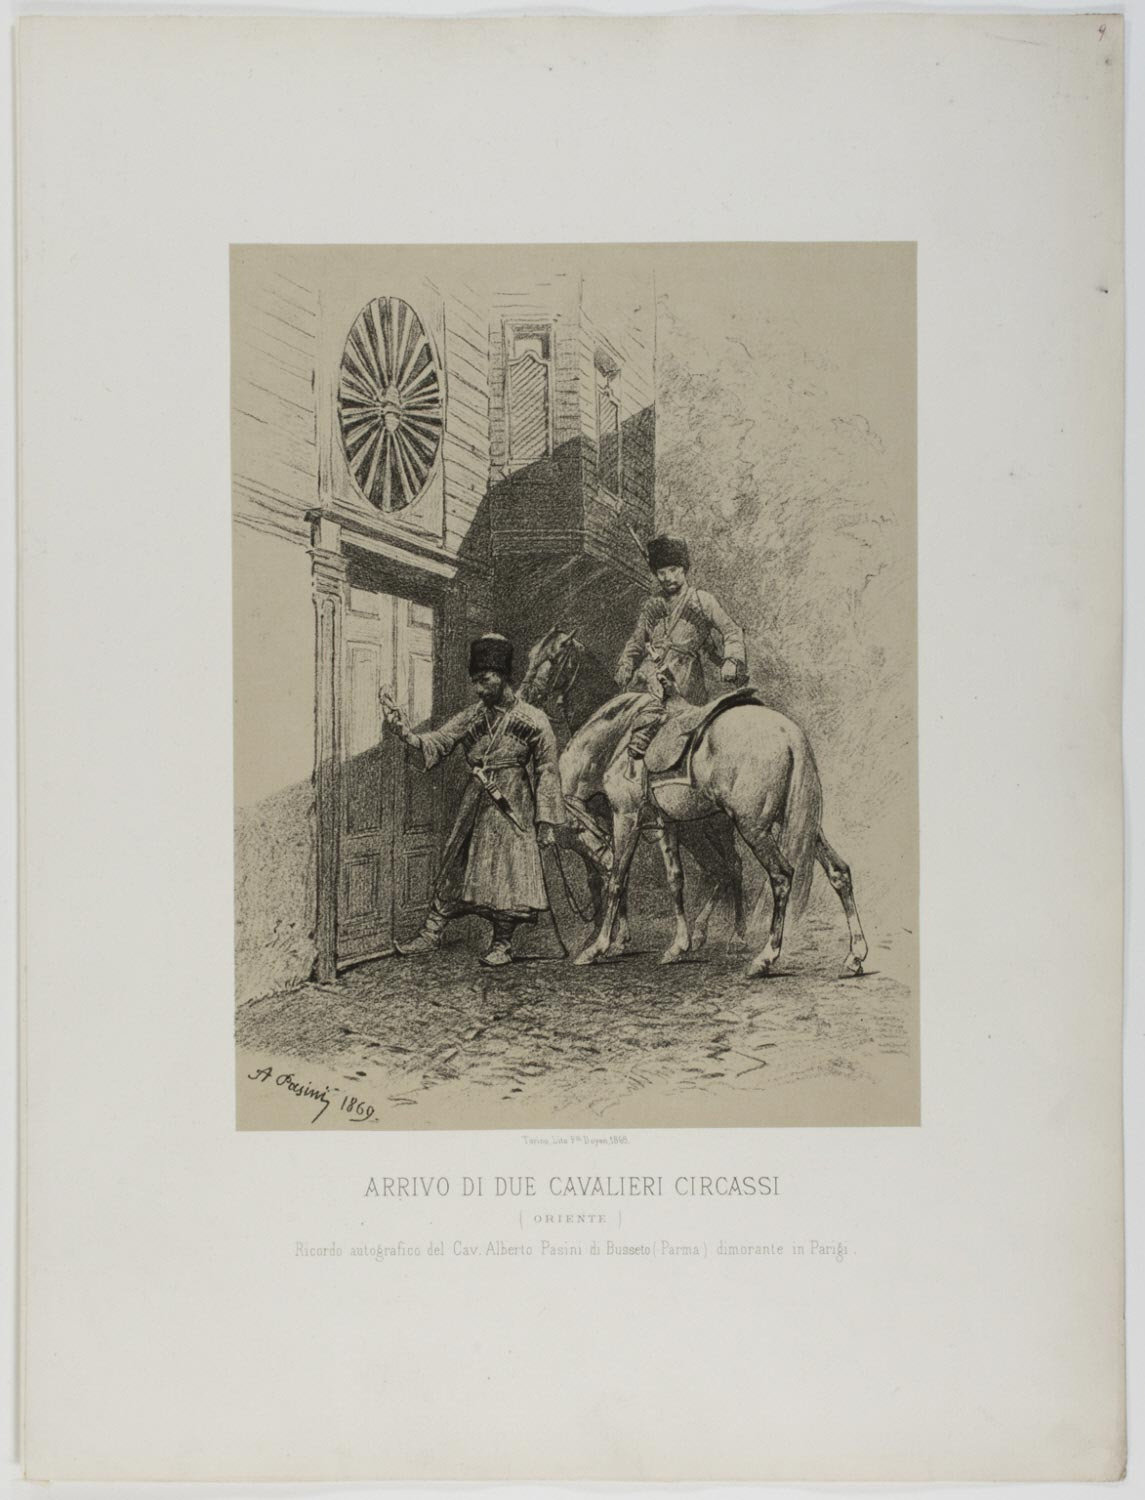 Arrival of Two Circassian Soldiers